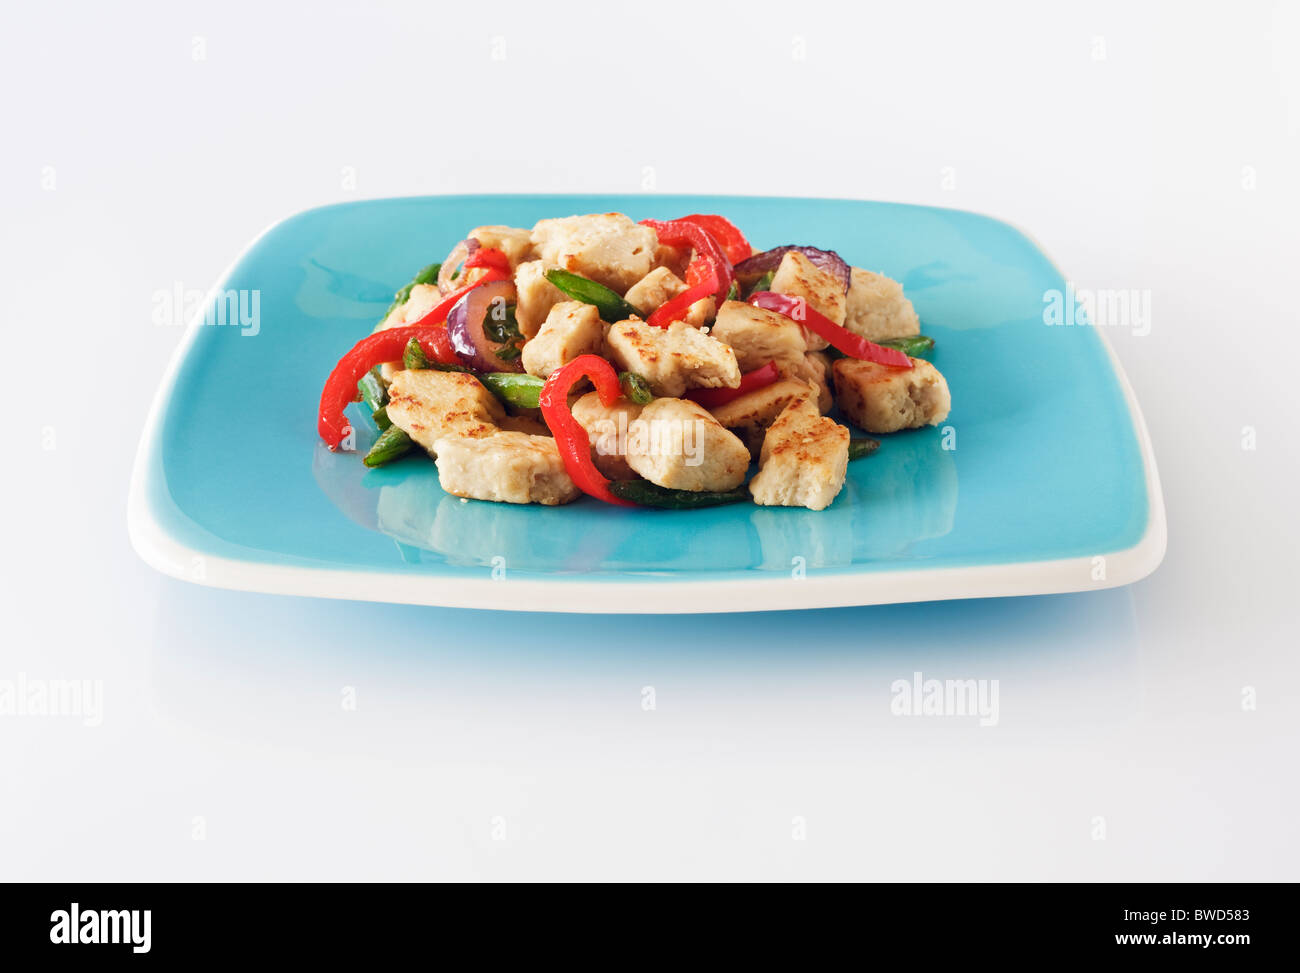 Quorn stir-fry on square blue plate - Stock Image